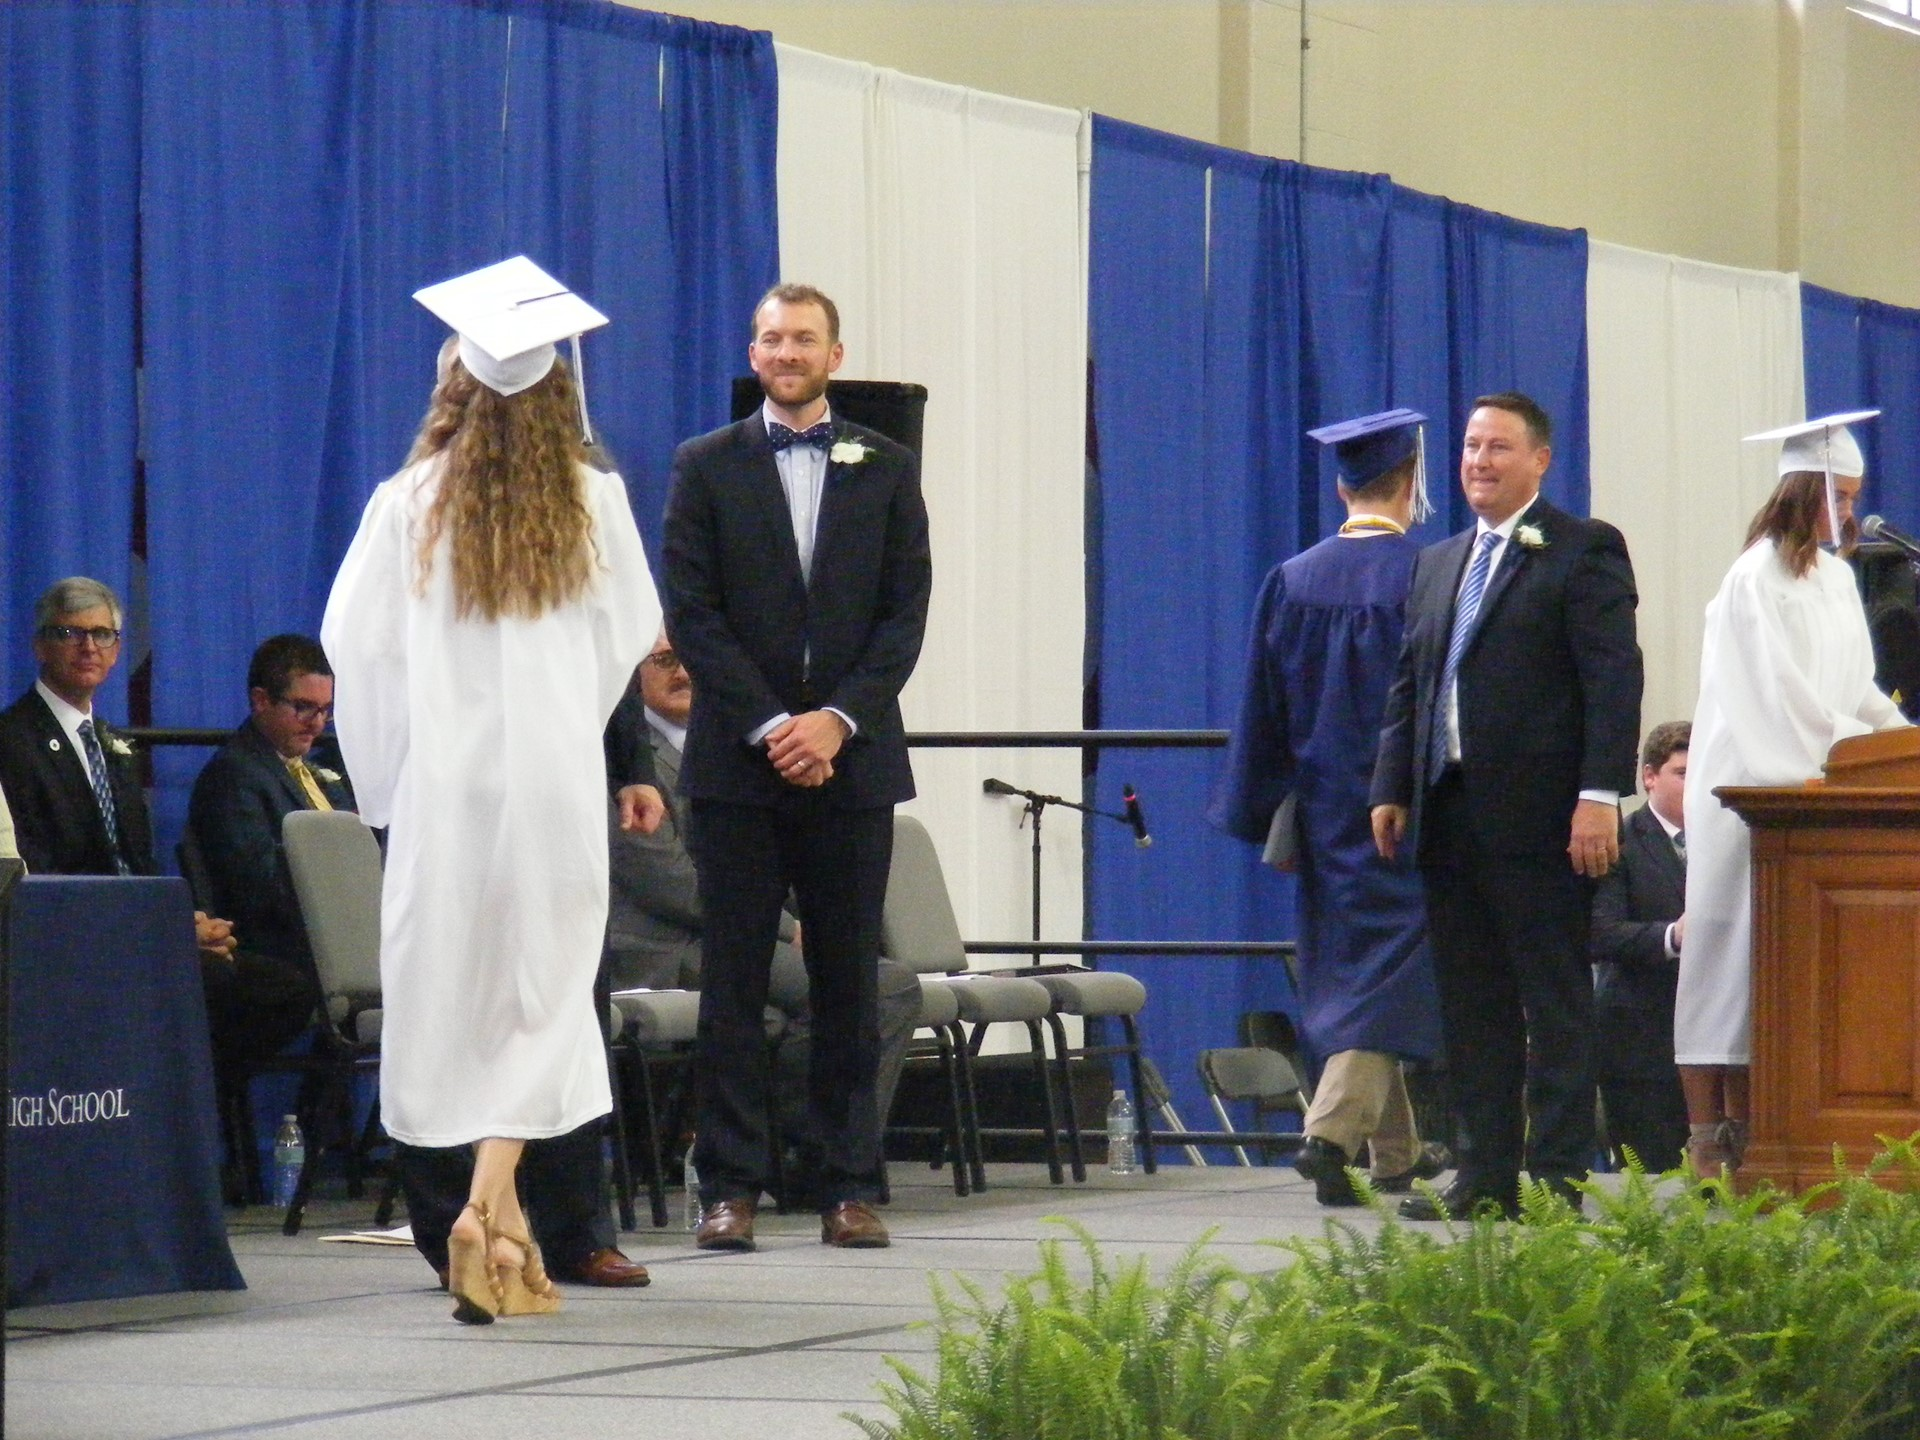 Shaking Hands with the Principals